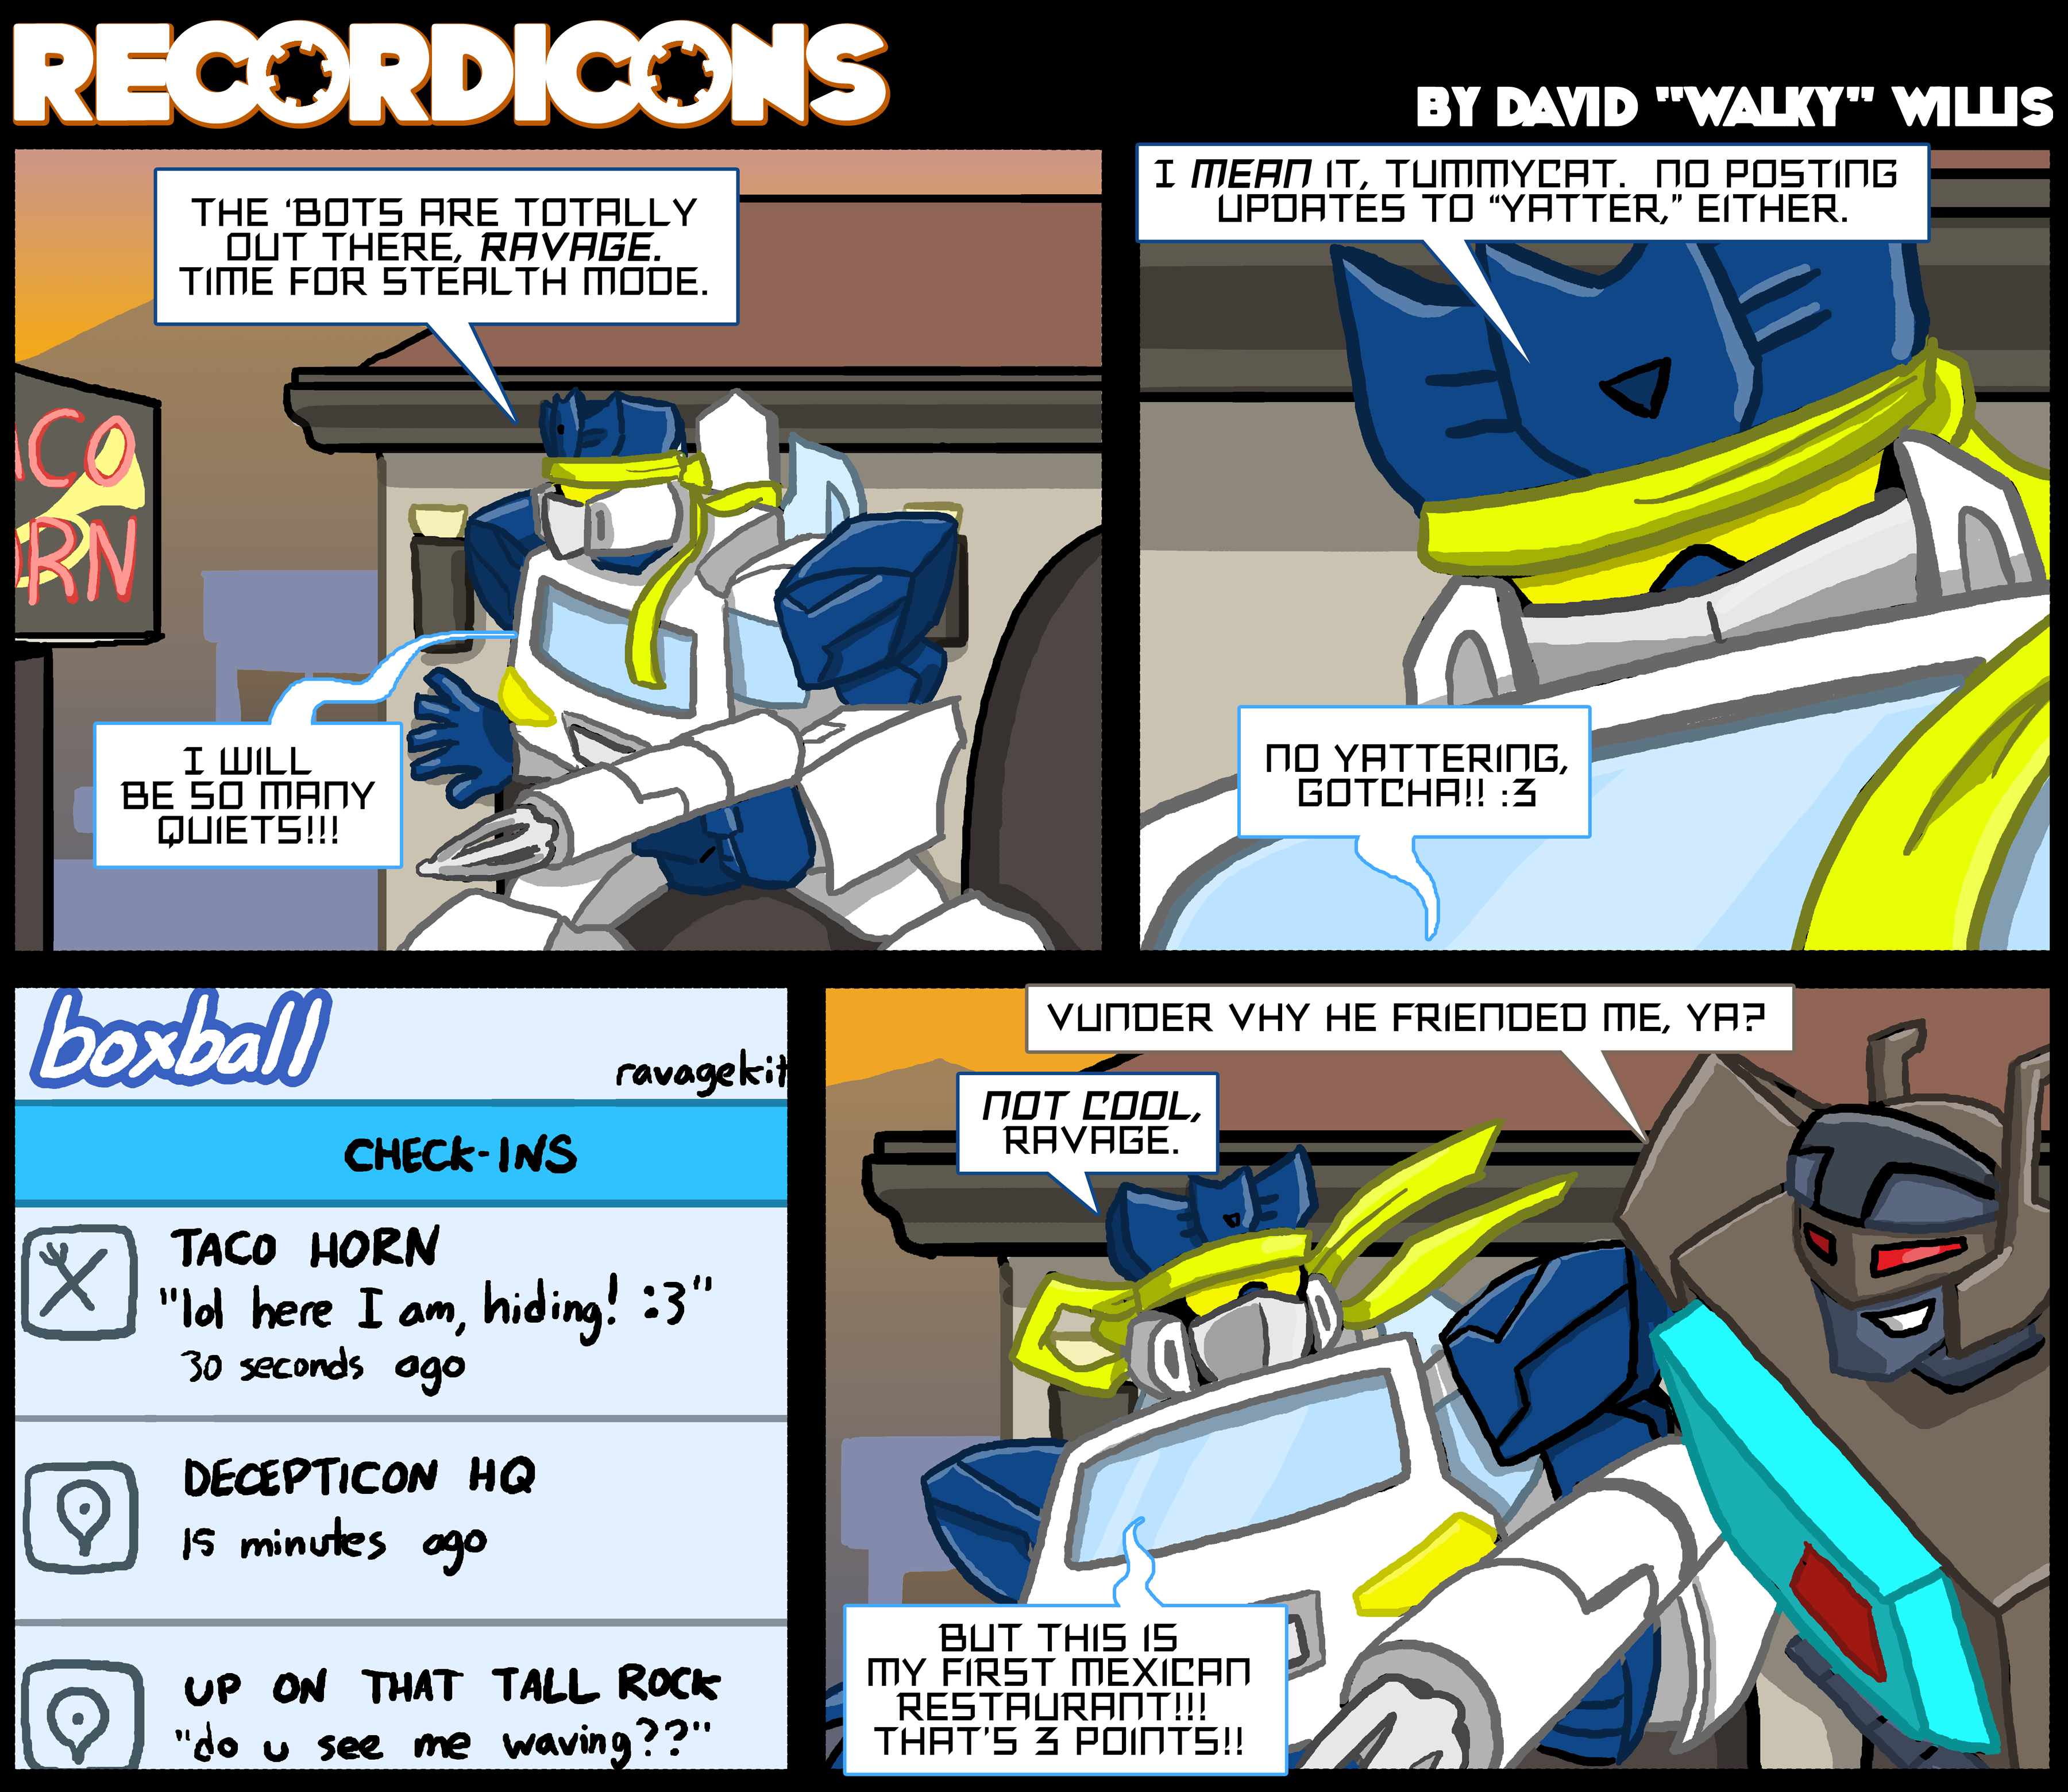 Recordicons #6 by itswalky